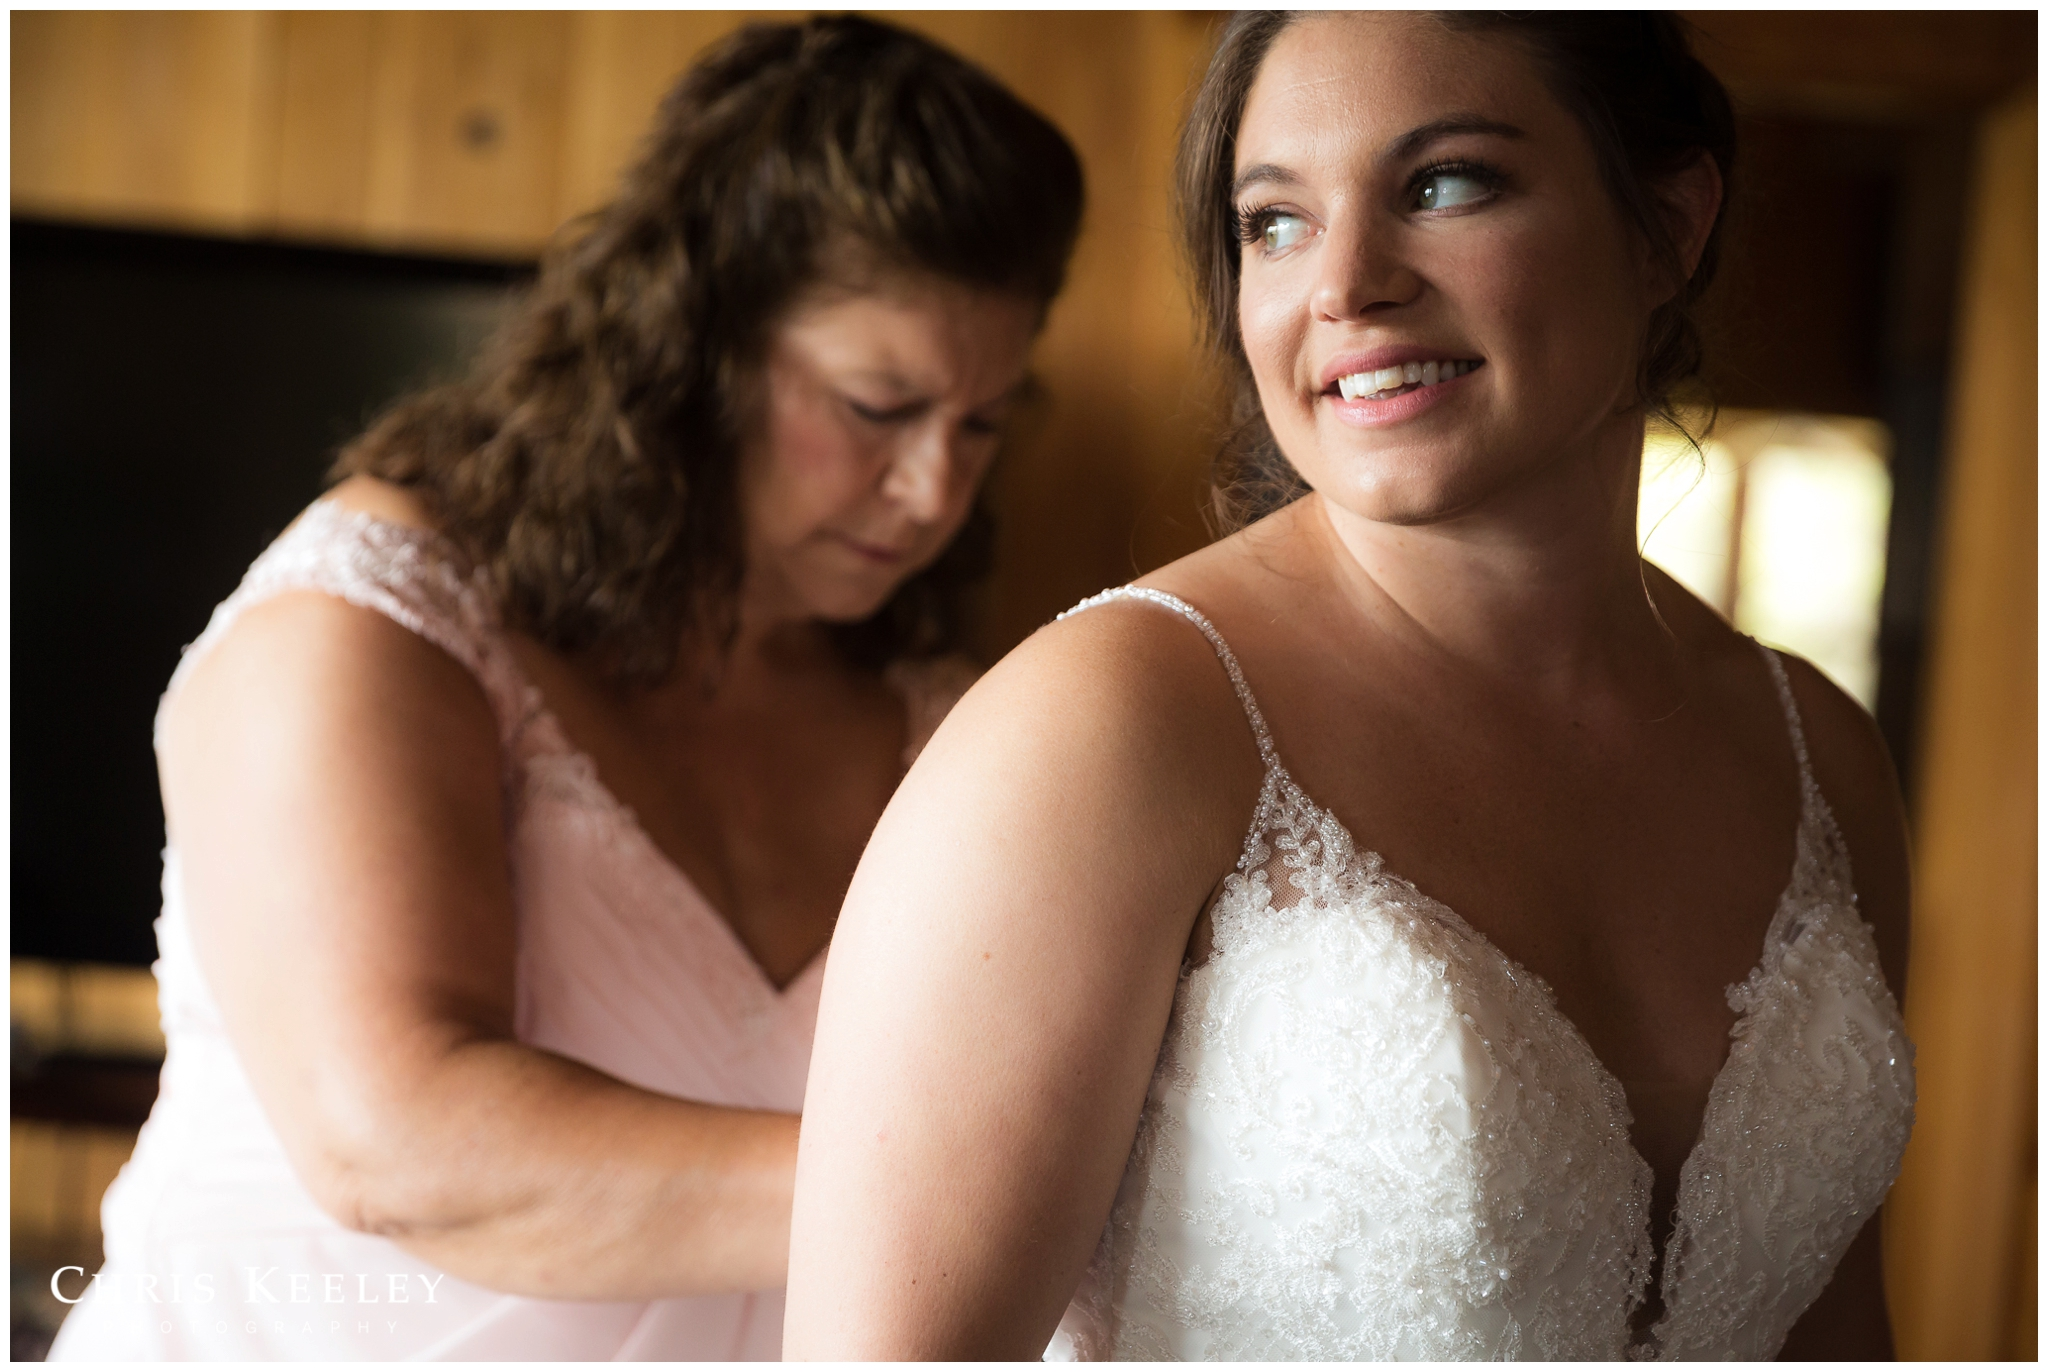 mother-of-bride-helping-daughter-into-dress.jpg